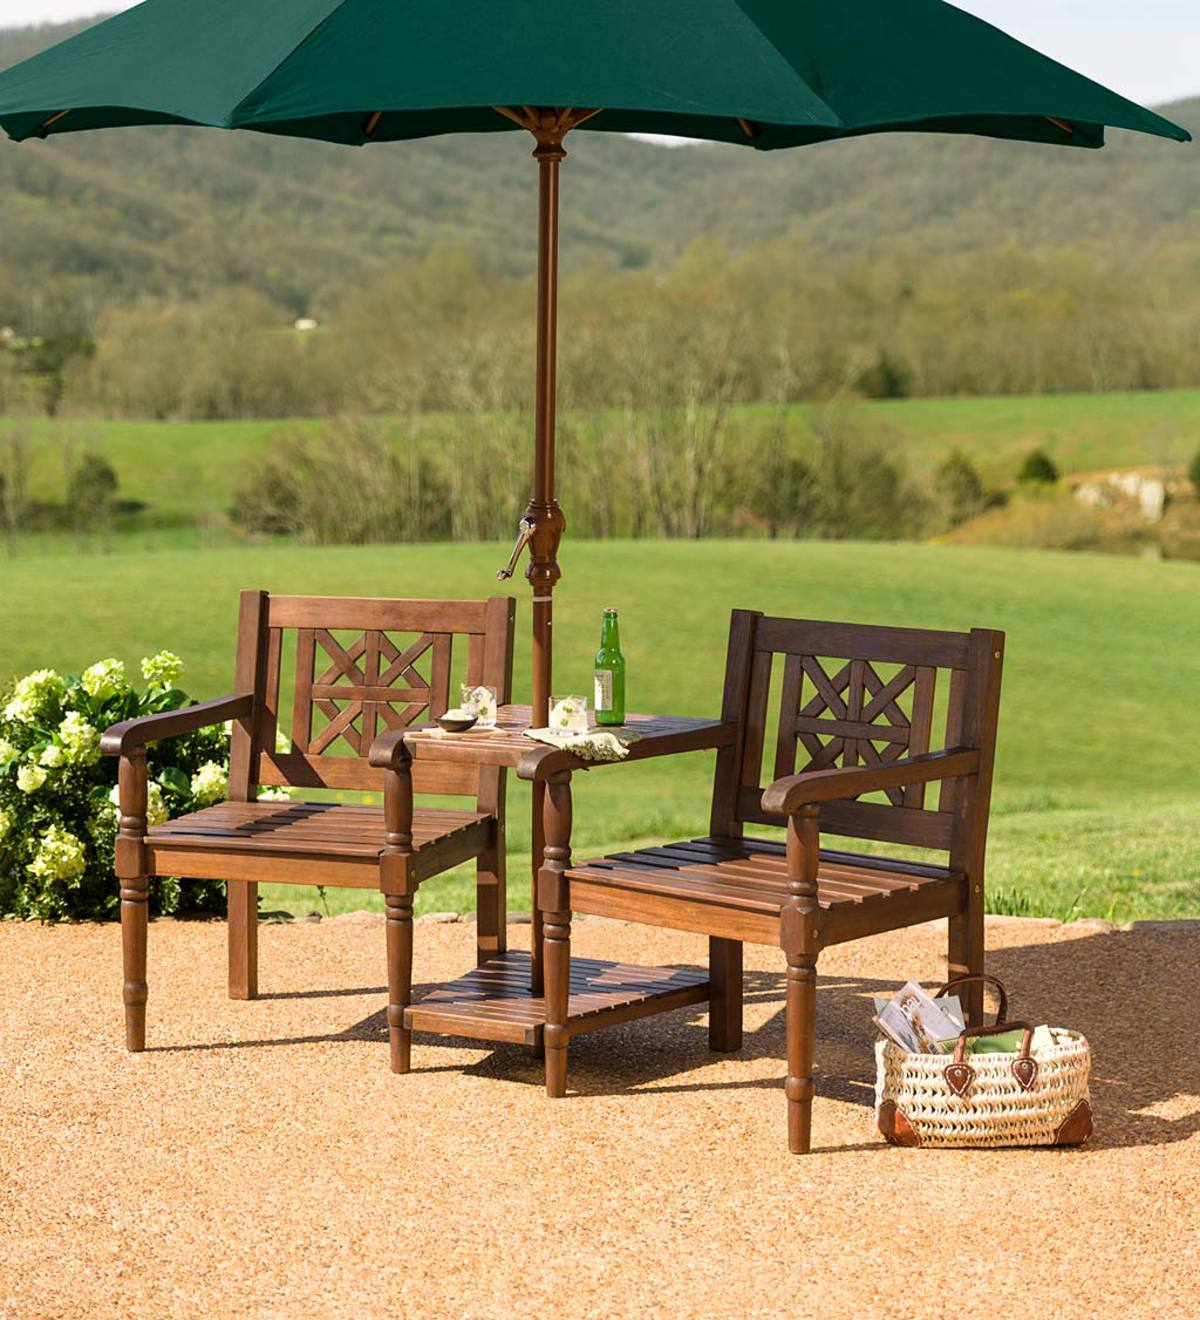 Eucalyptus Tete A Tete Set With Detachable Chairs | Plowhearth With Wicker Tete A Tete Benches (View 19 of 25)